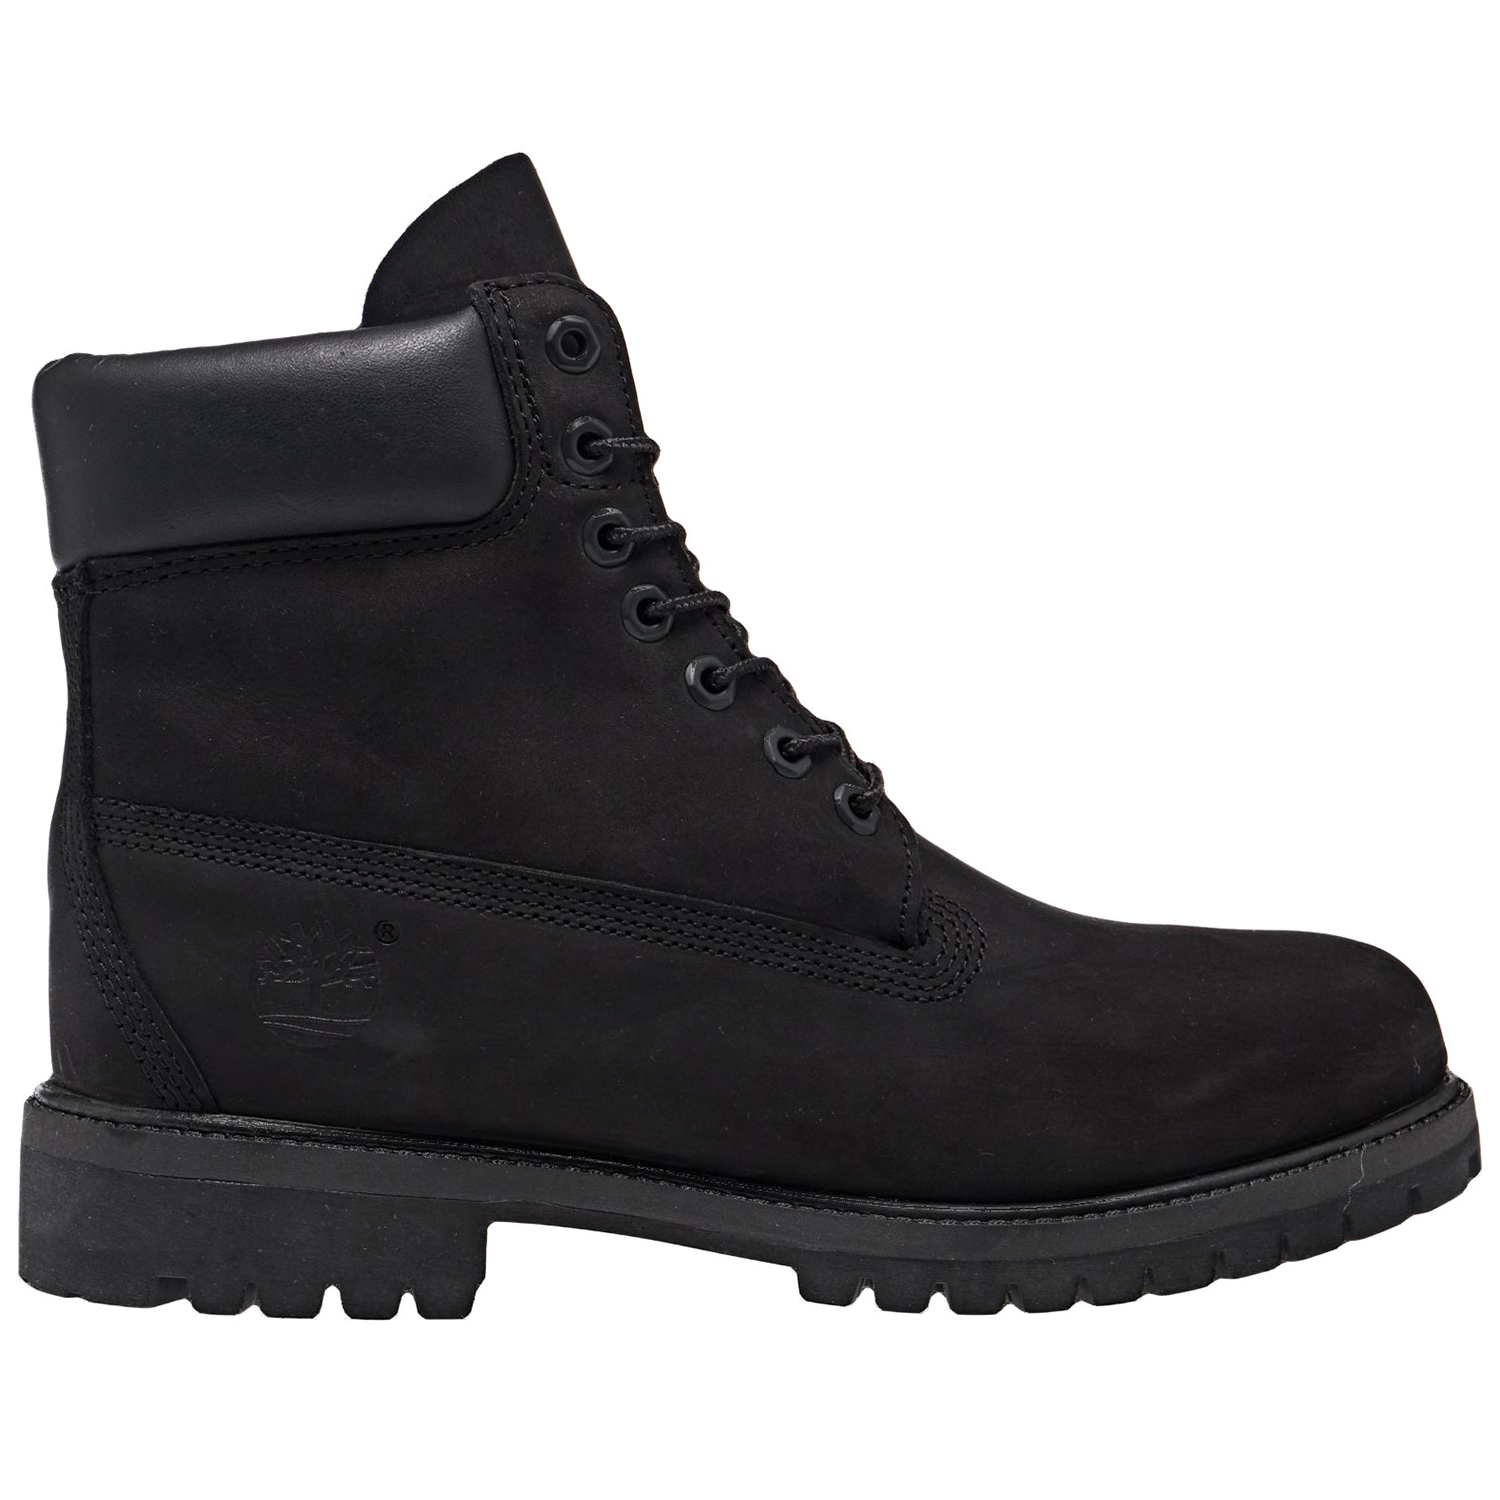 Timberland Boots & Footwear from Blackleaf